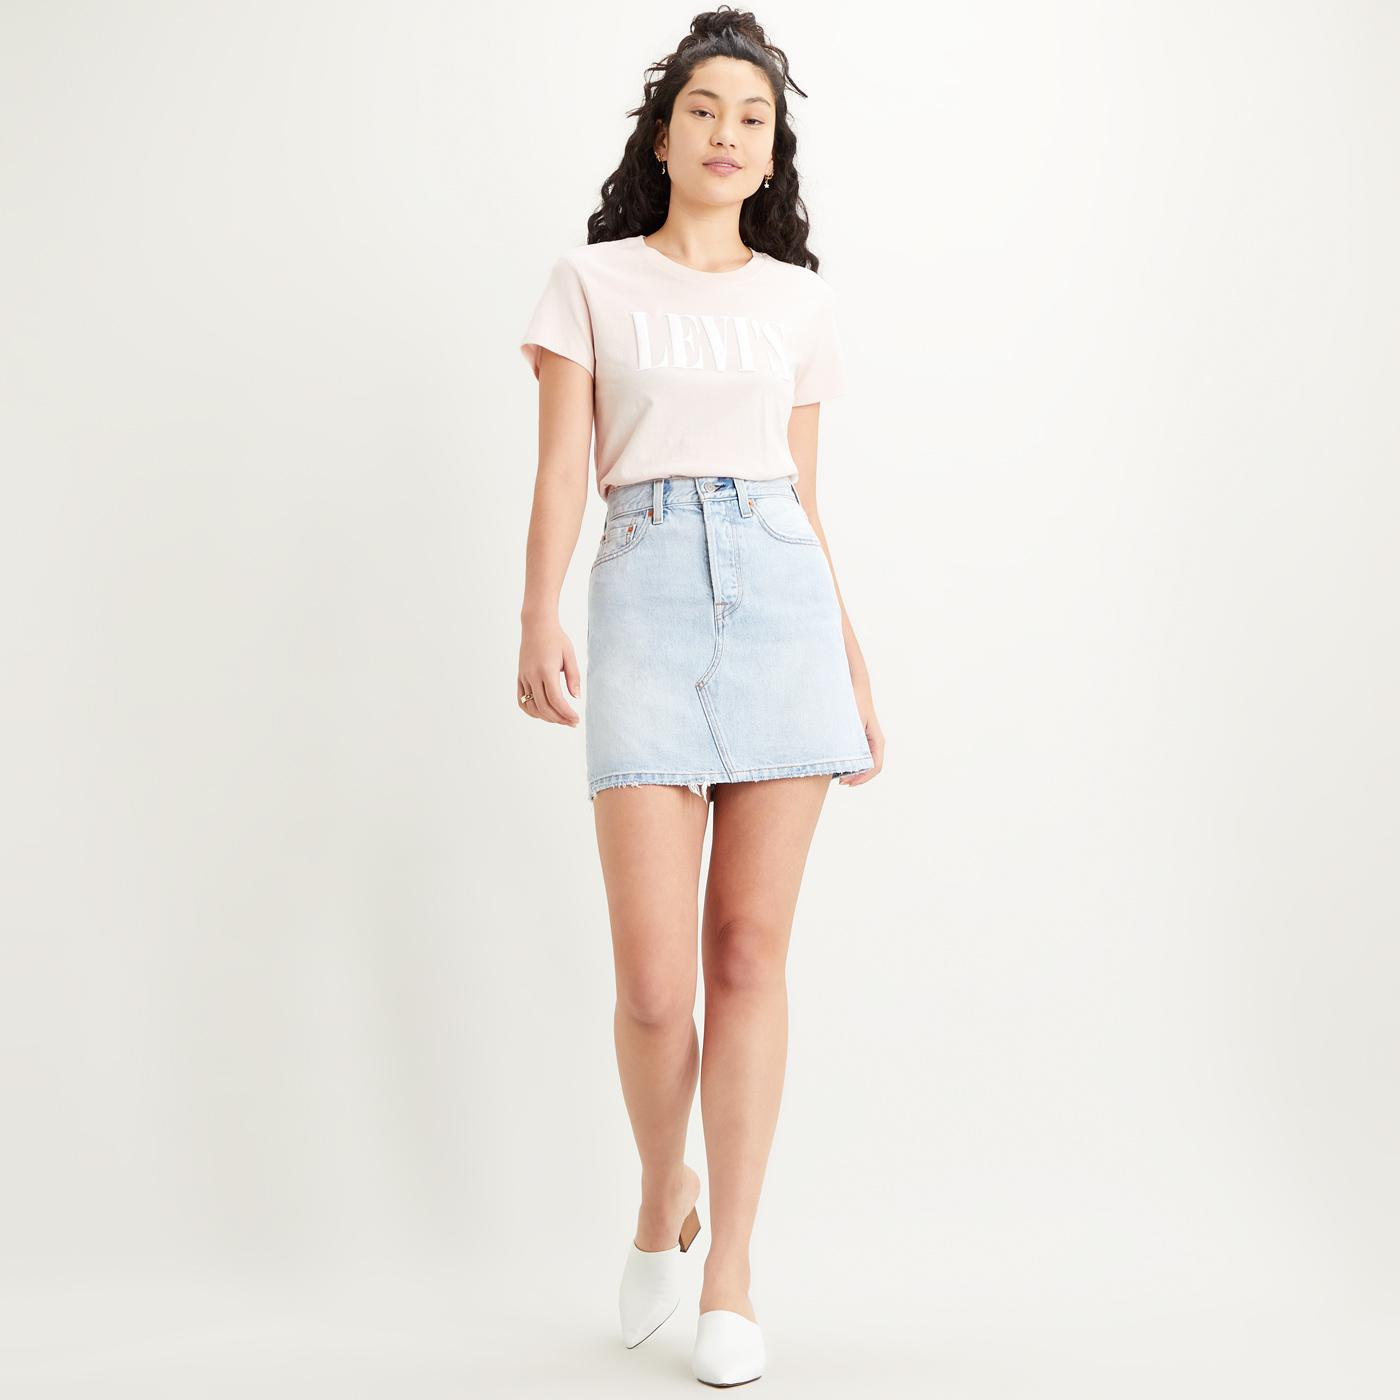 LEVI'S HR Decon Iconic Bfly Skirt (Check Ya Later)